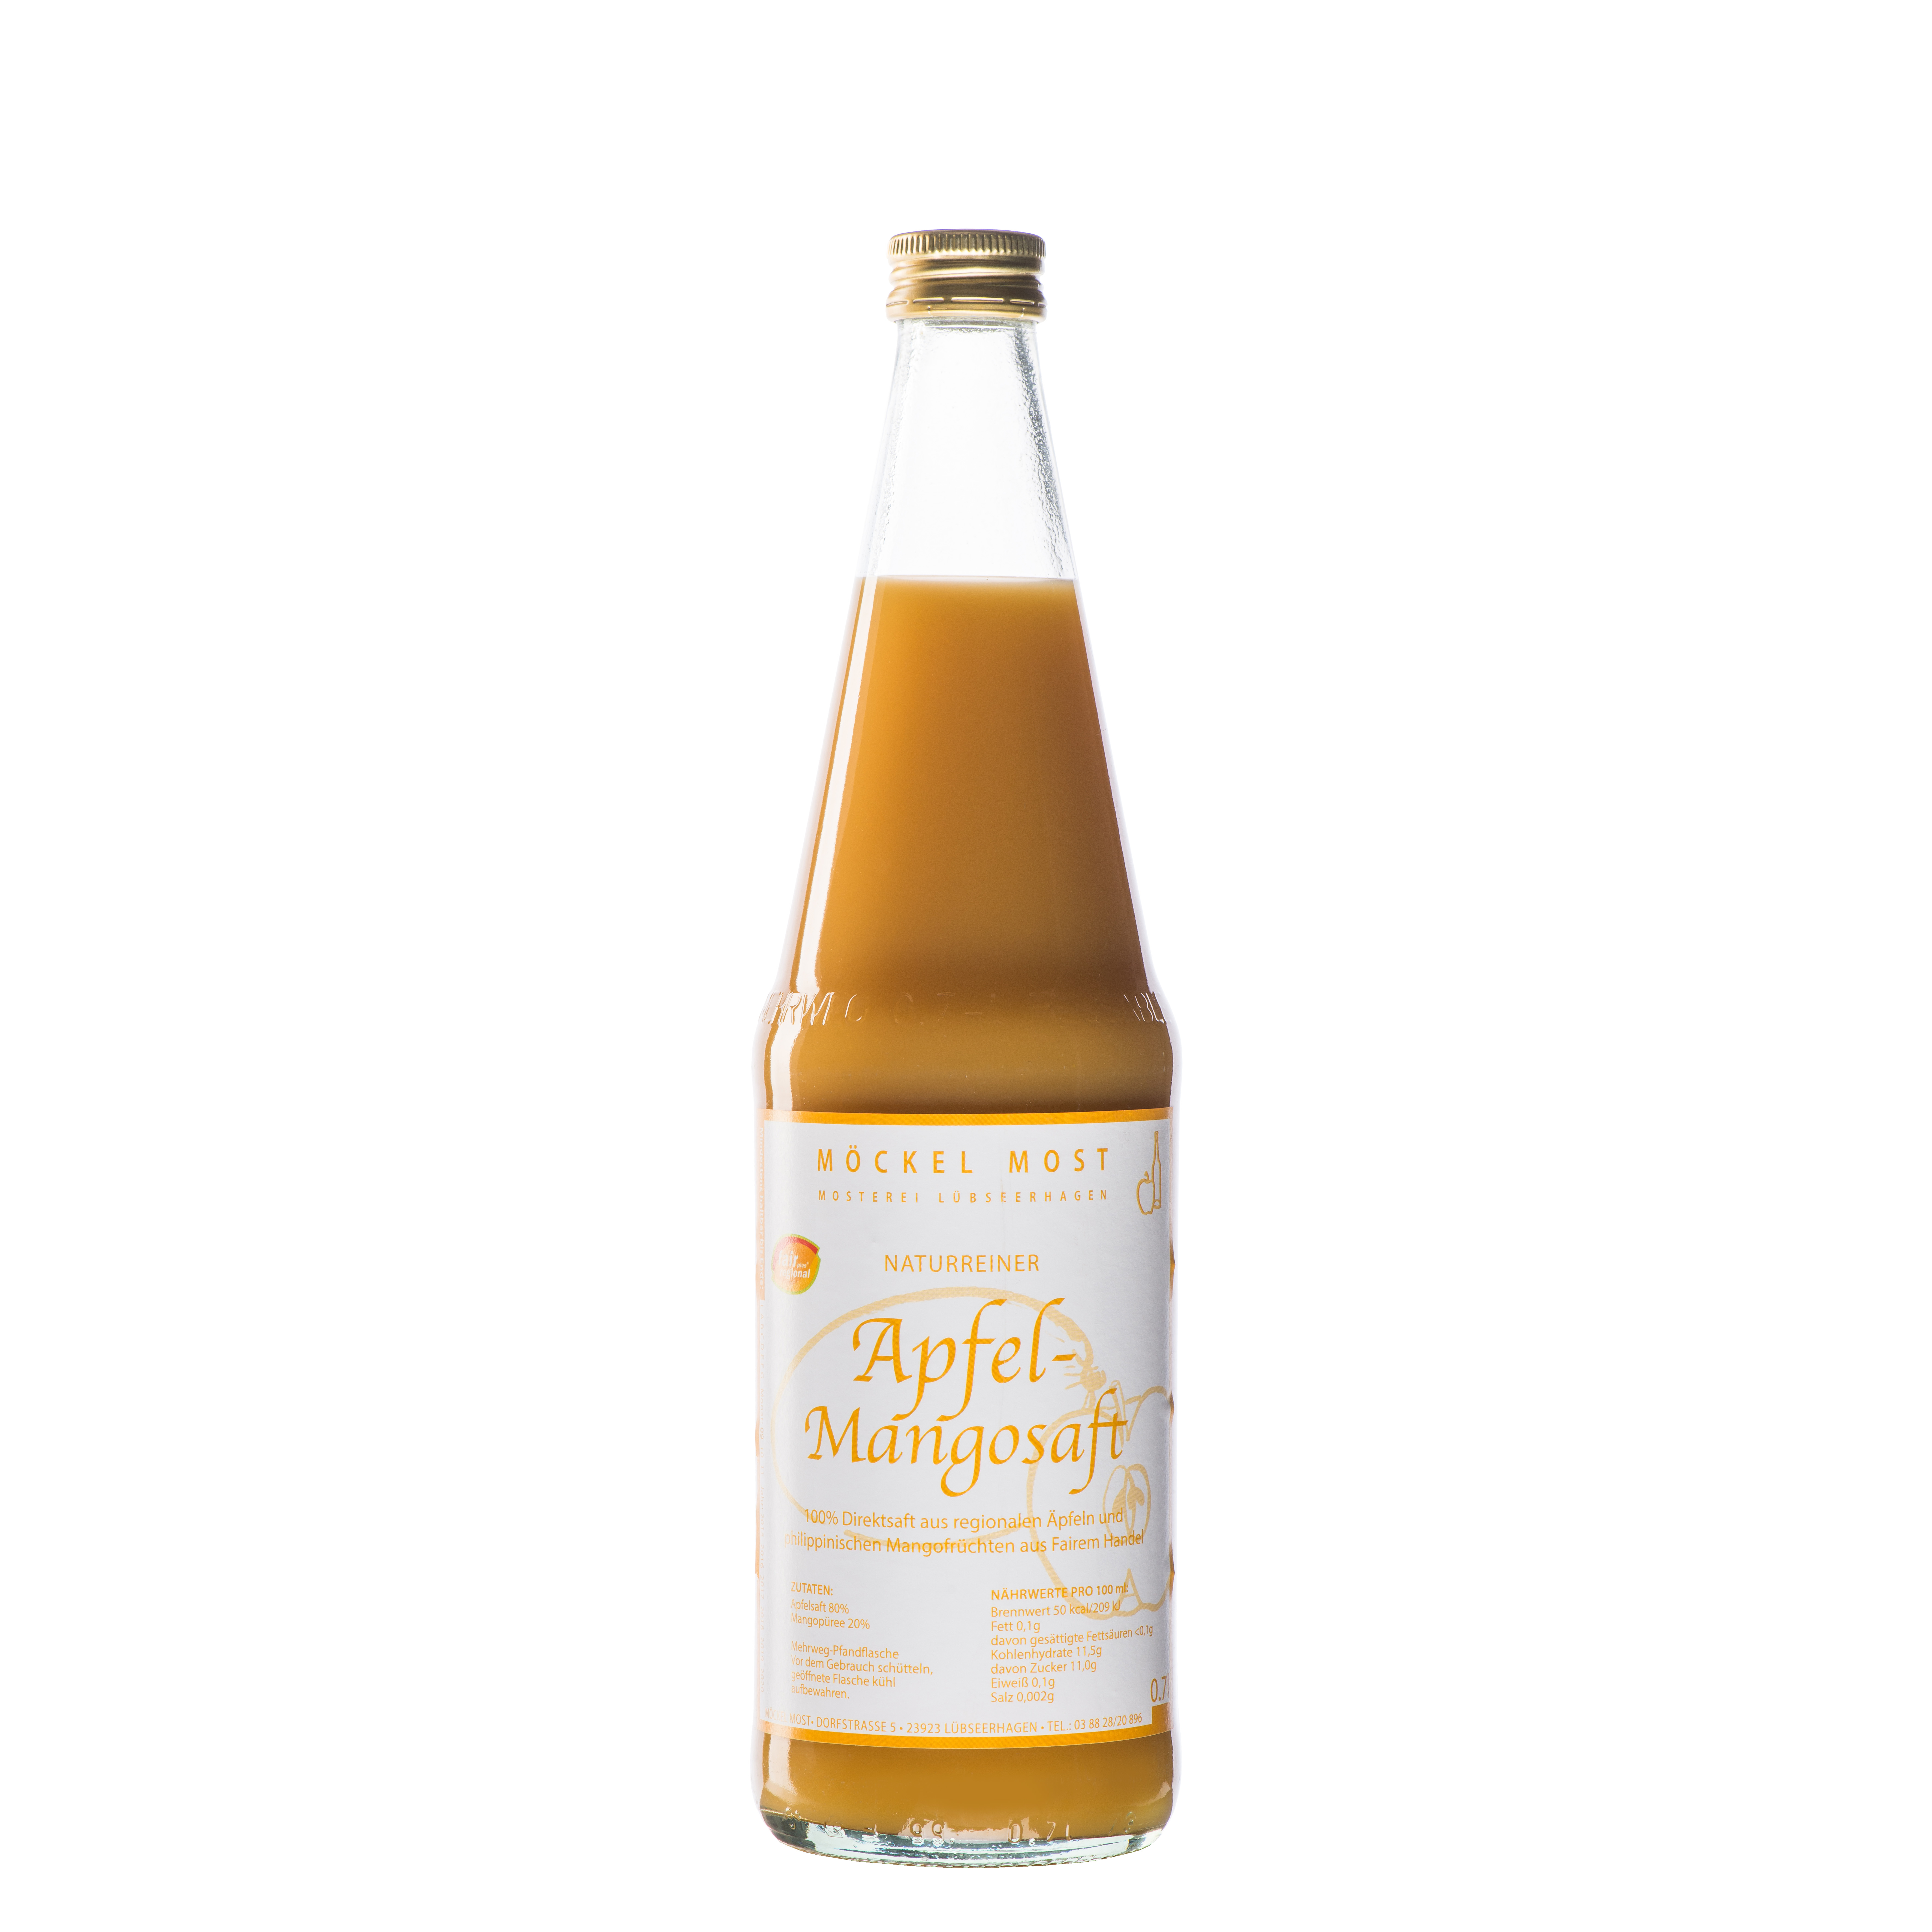 Möckel Most Apfelsaft Mangosaft Saft Gourmetsaft